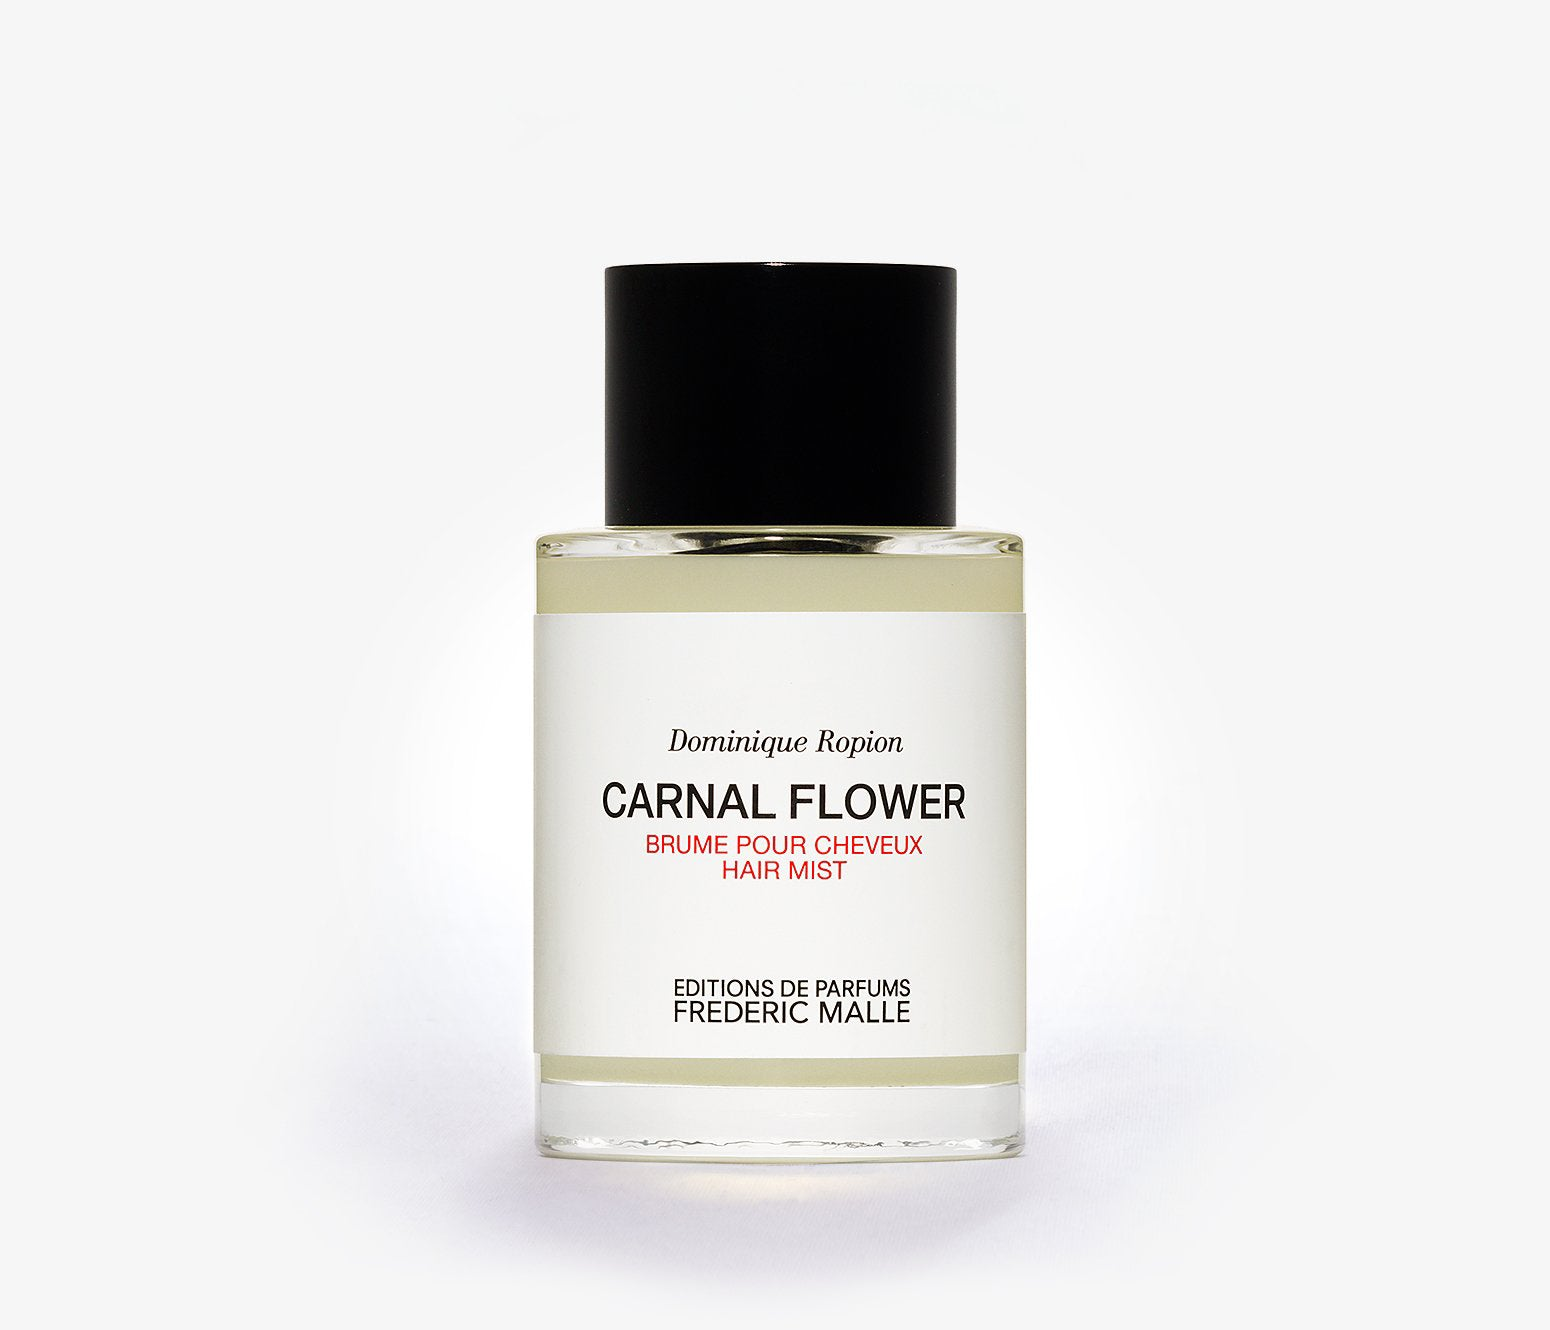 Frederic Malle - Carnal Flower Hair Mist - 100ml - BNX001 - product image - Hair Mist - Les Senteurs